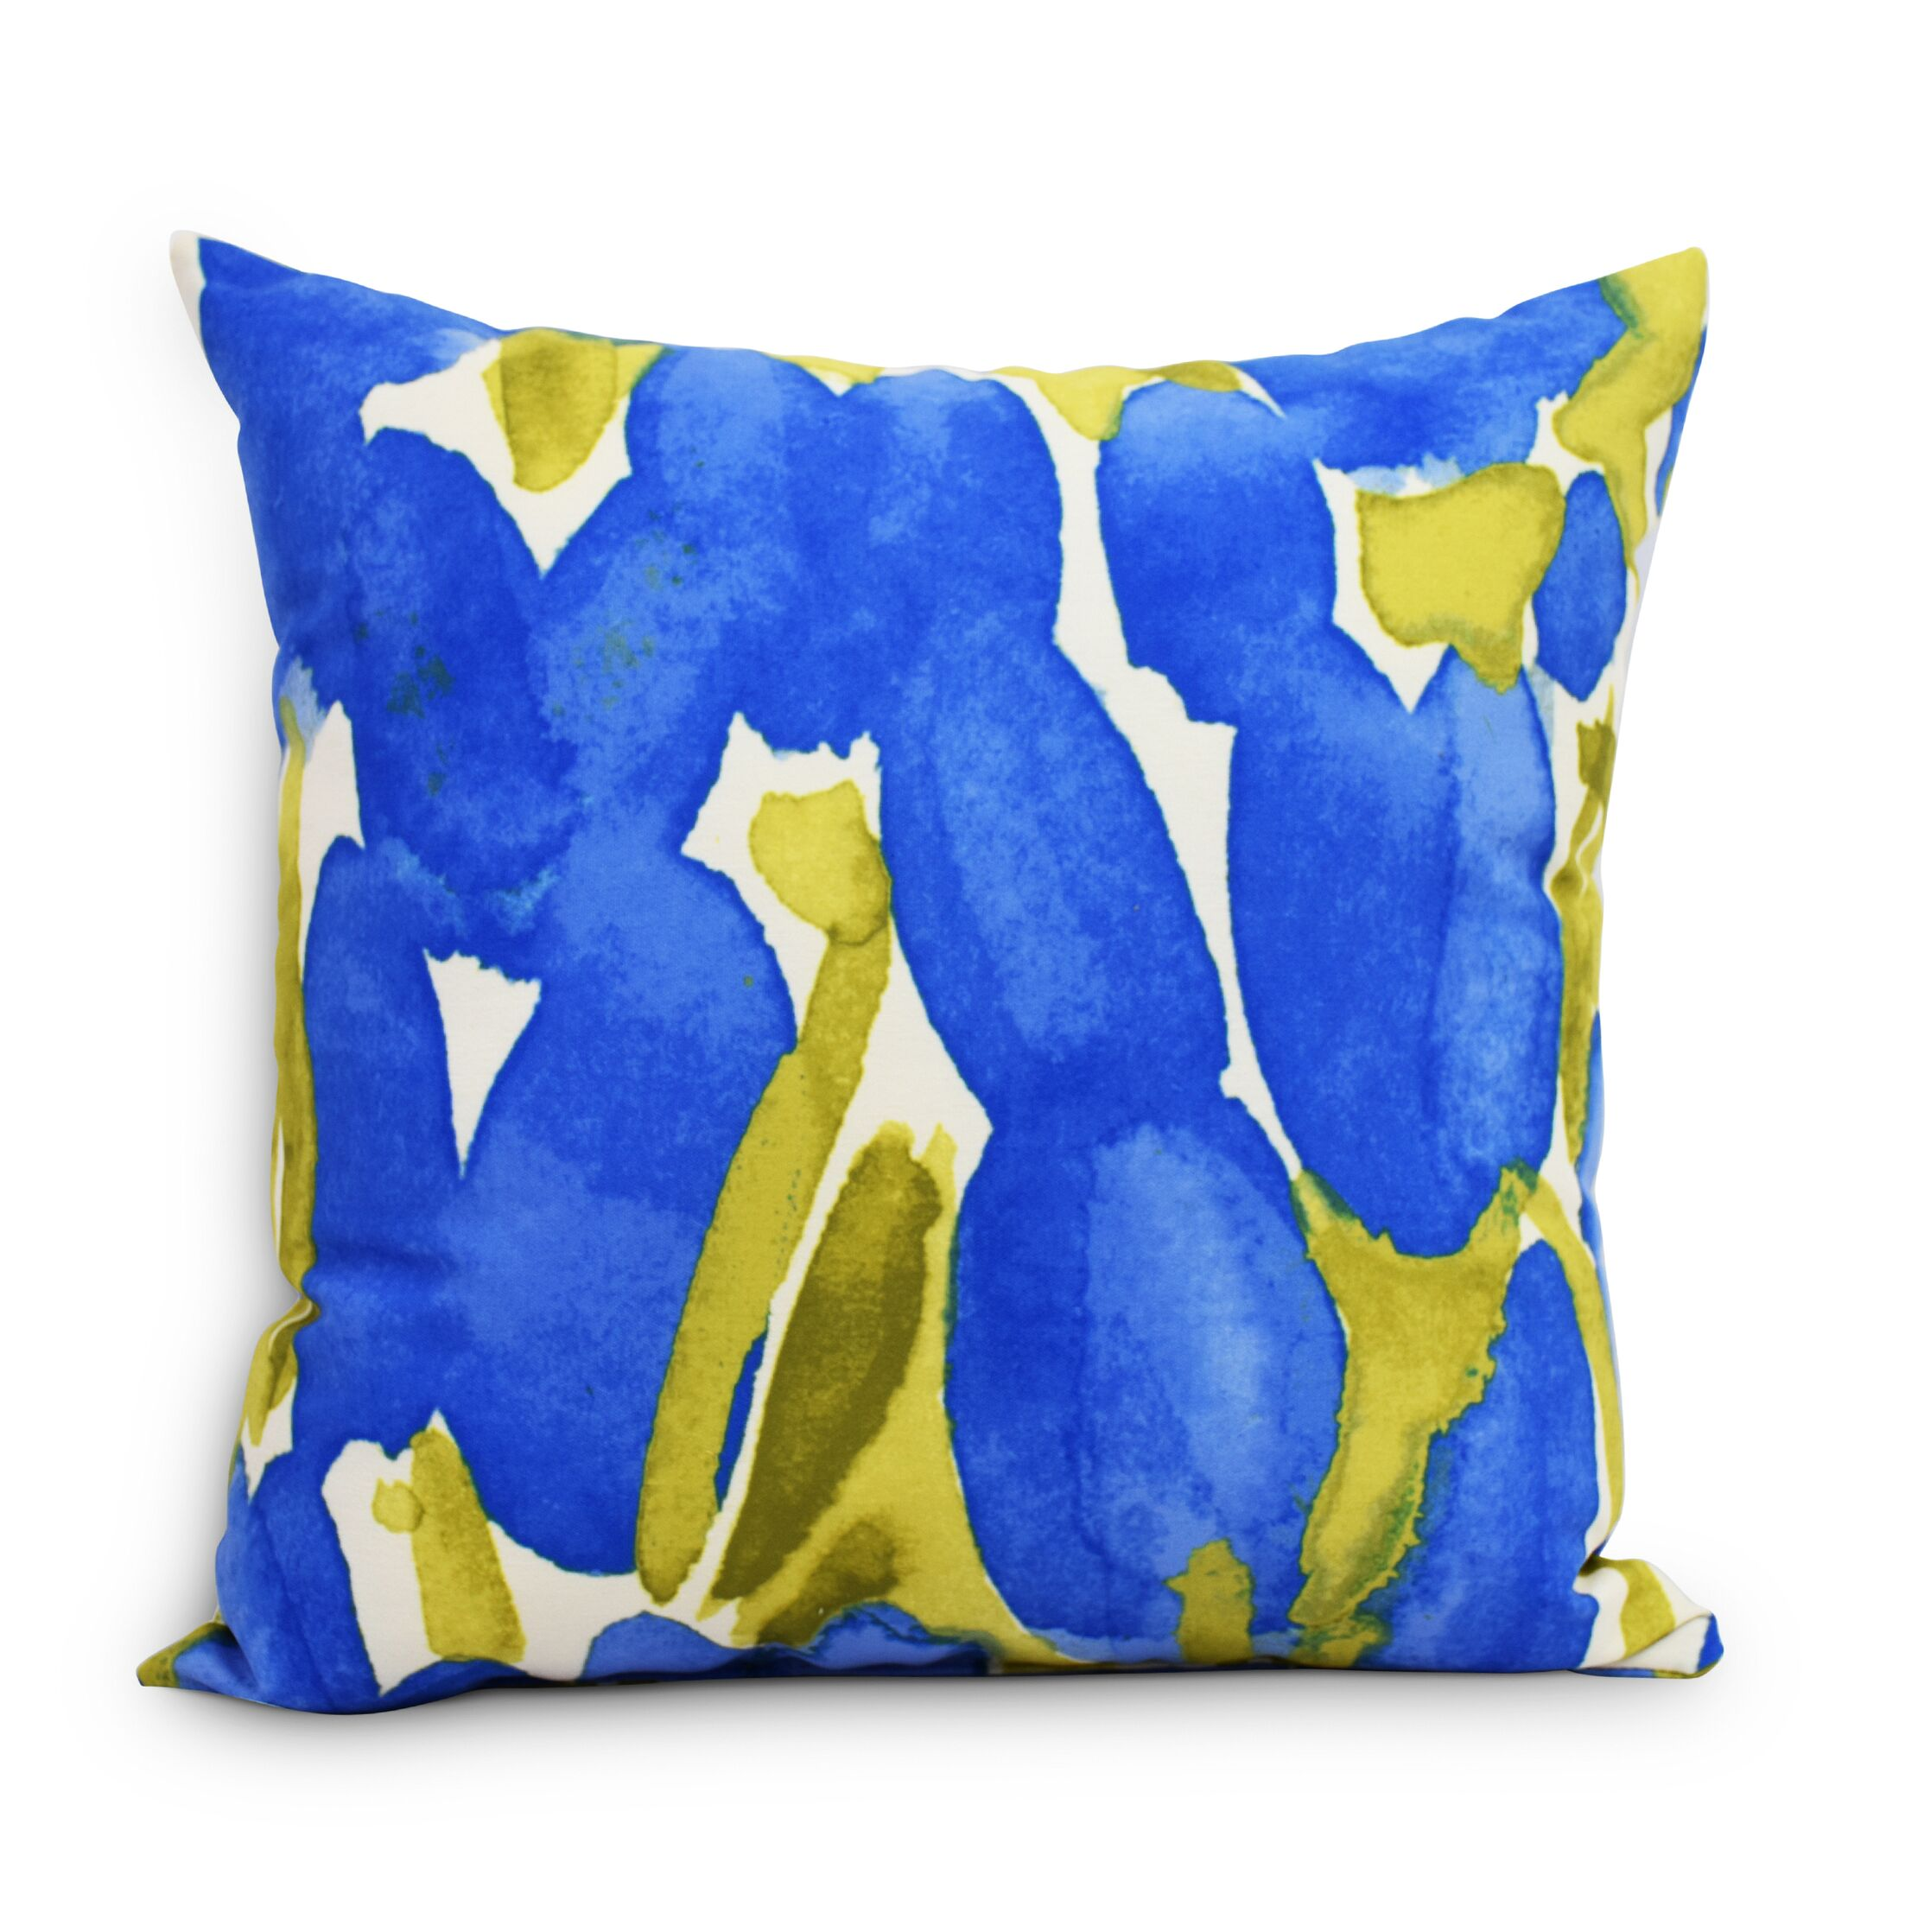 Quast Tulip Throw Pillow Color: Blue, Size: Medium, Location: Indoor